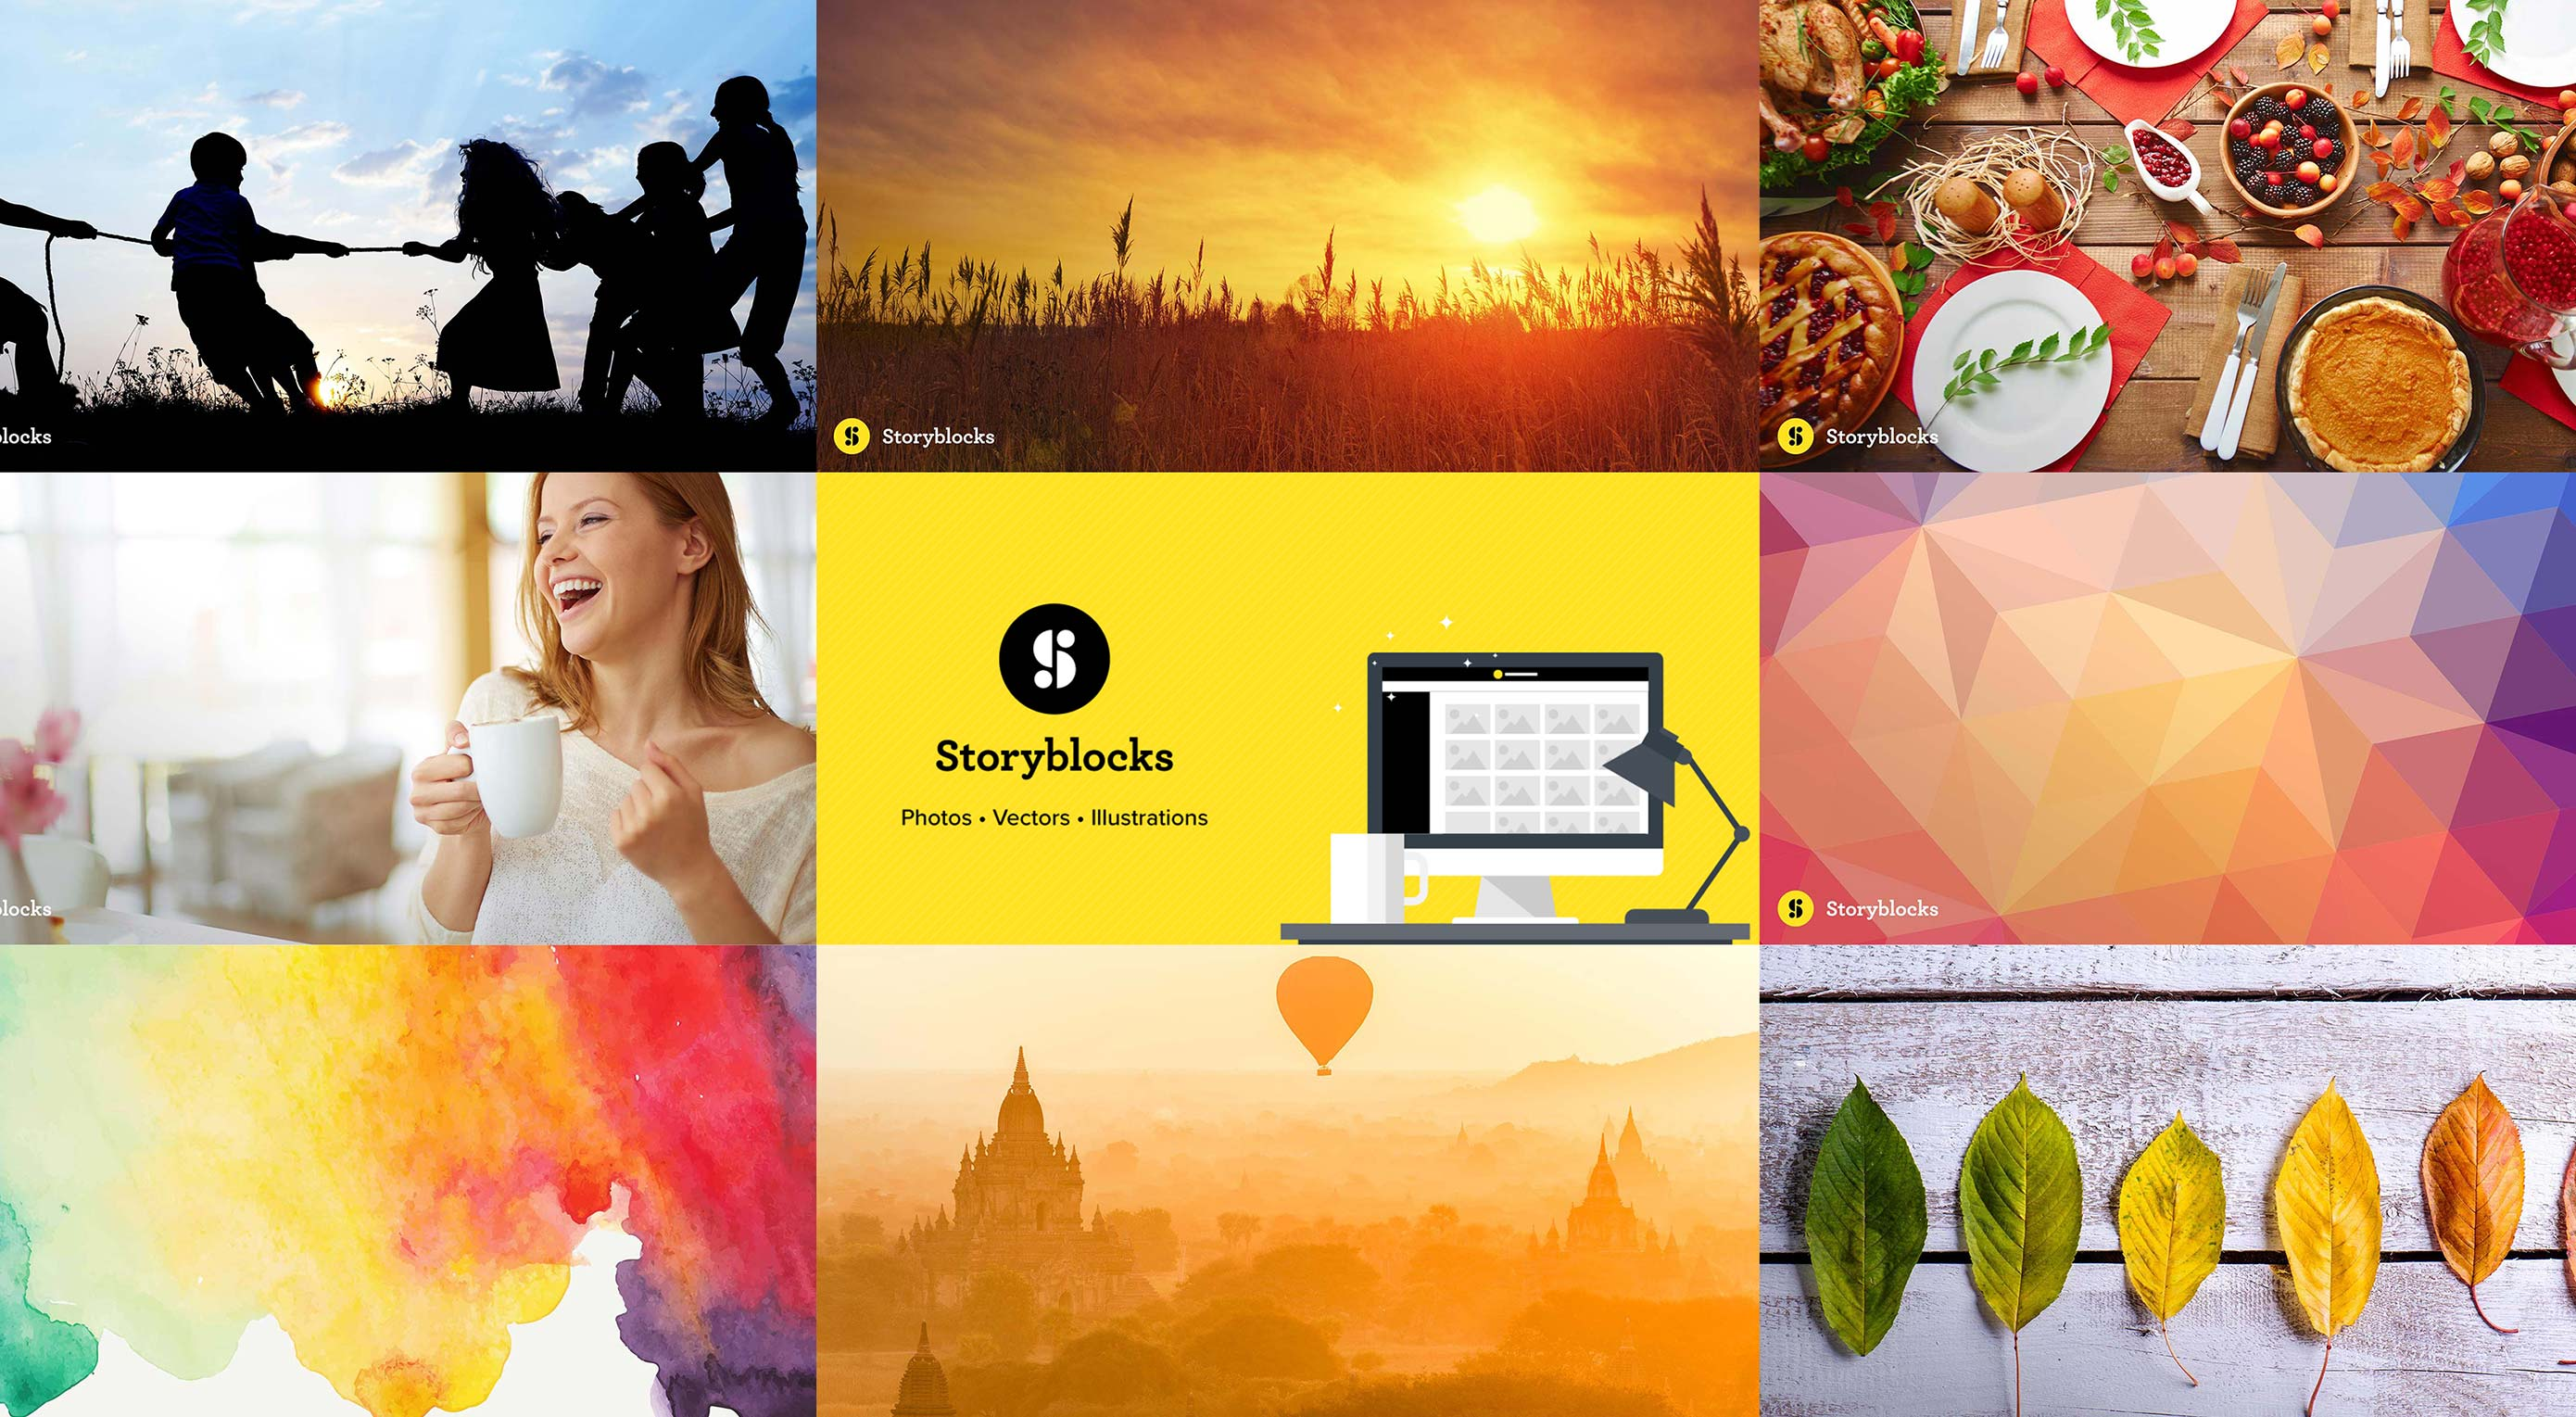 Download 140 Free Images from Storyblocks